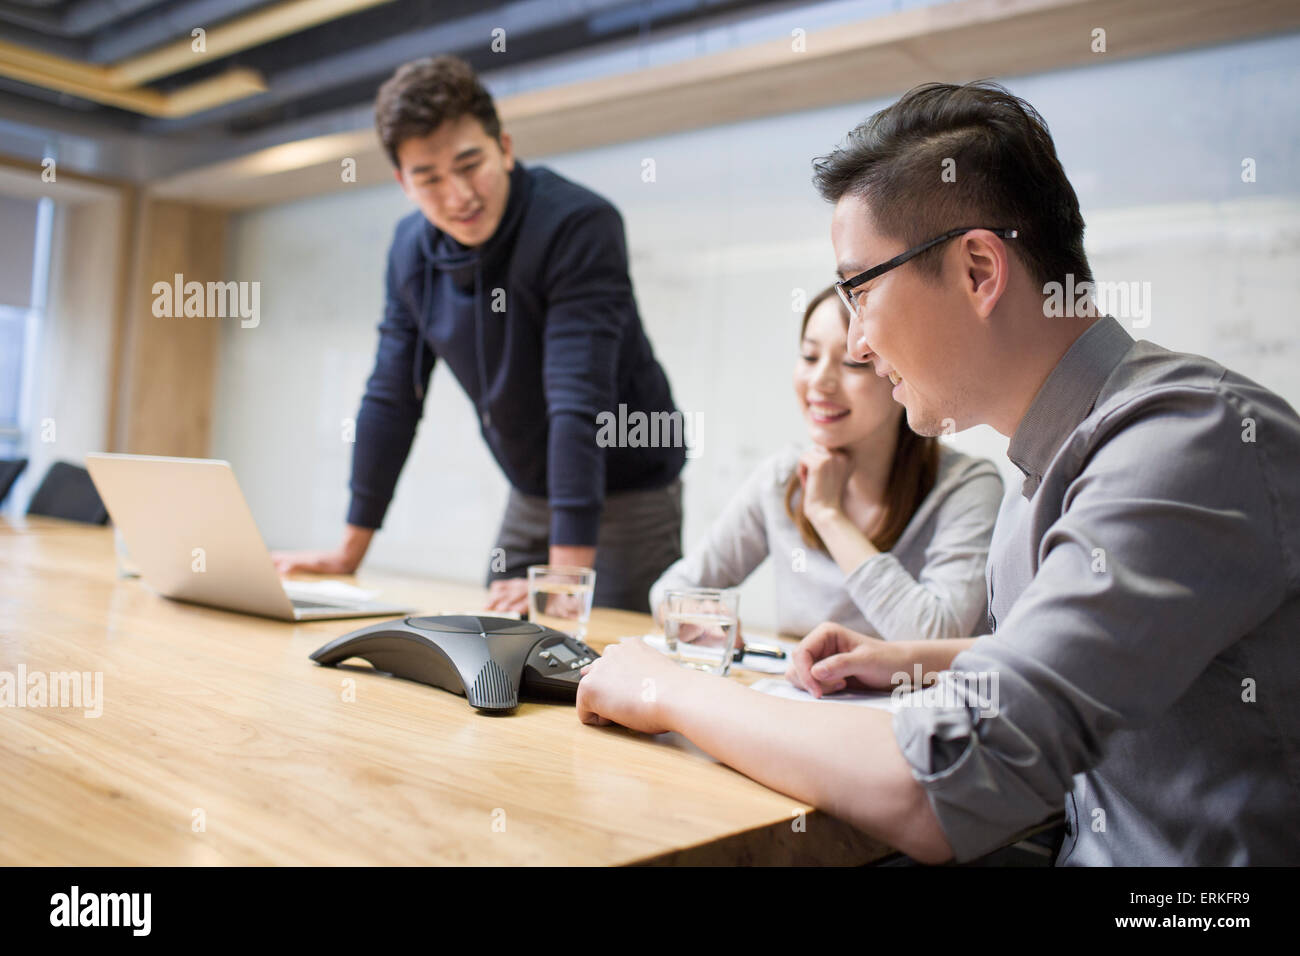 Business people having teleconference in board room - Stock Image